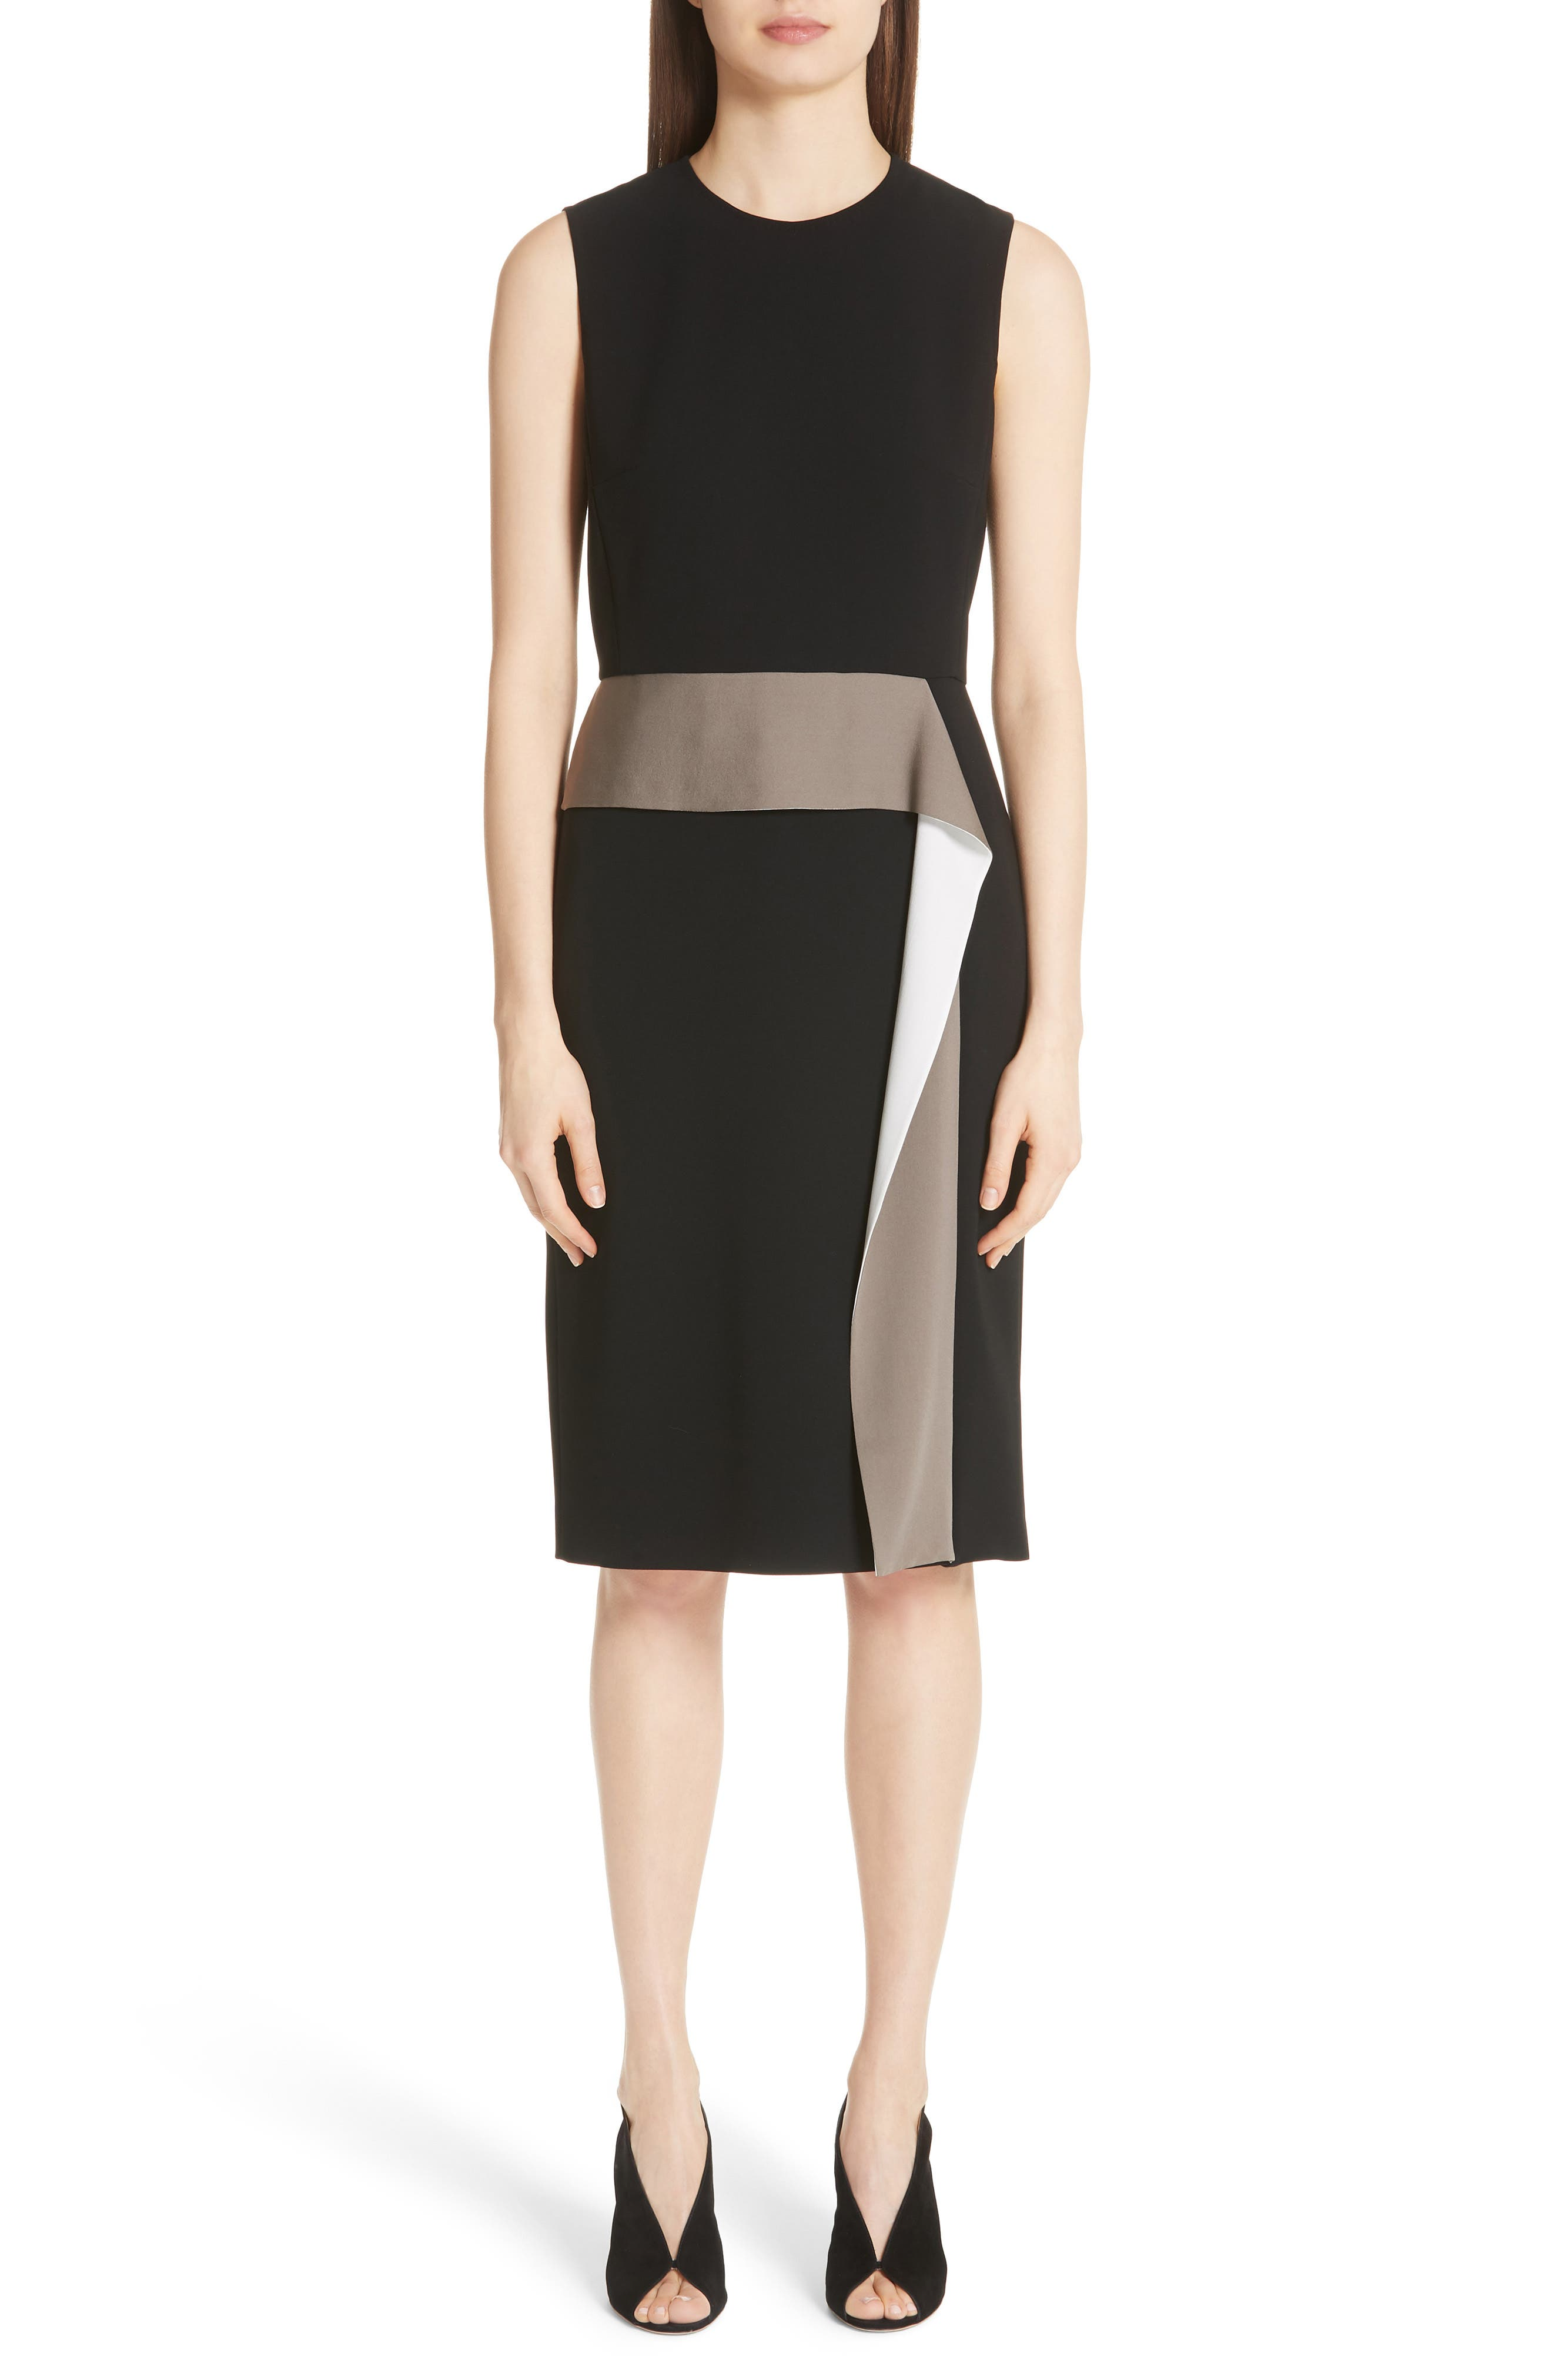 Etere Dress by Max Mara